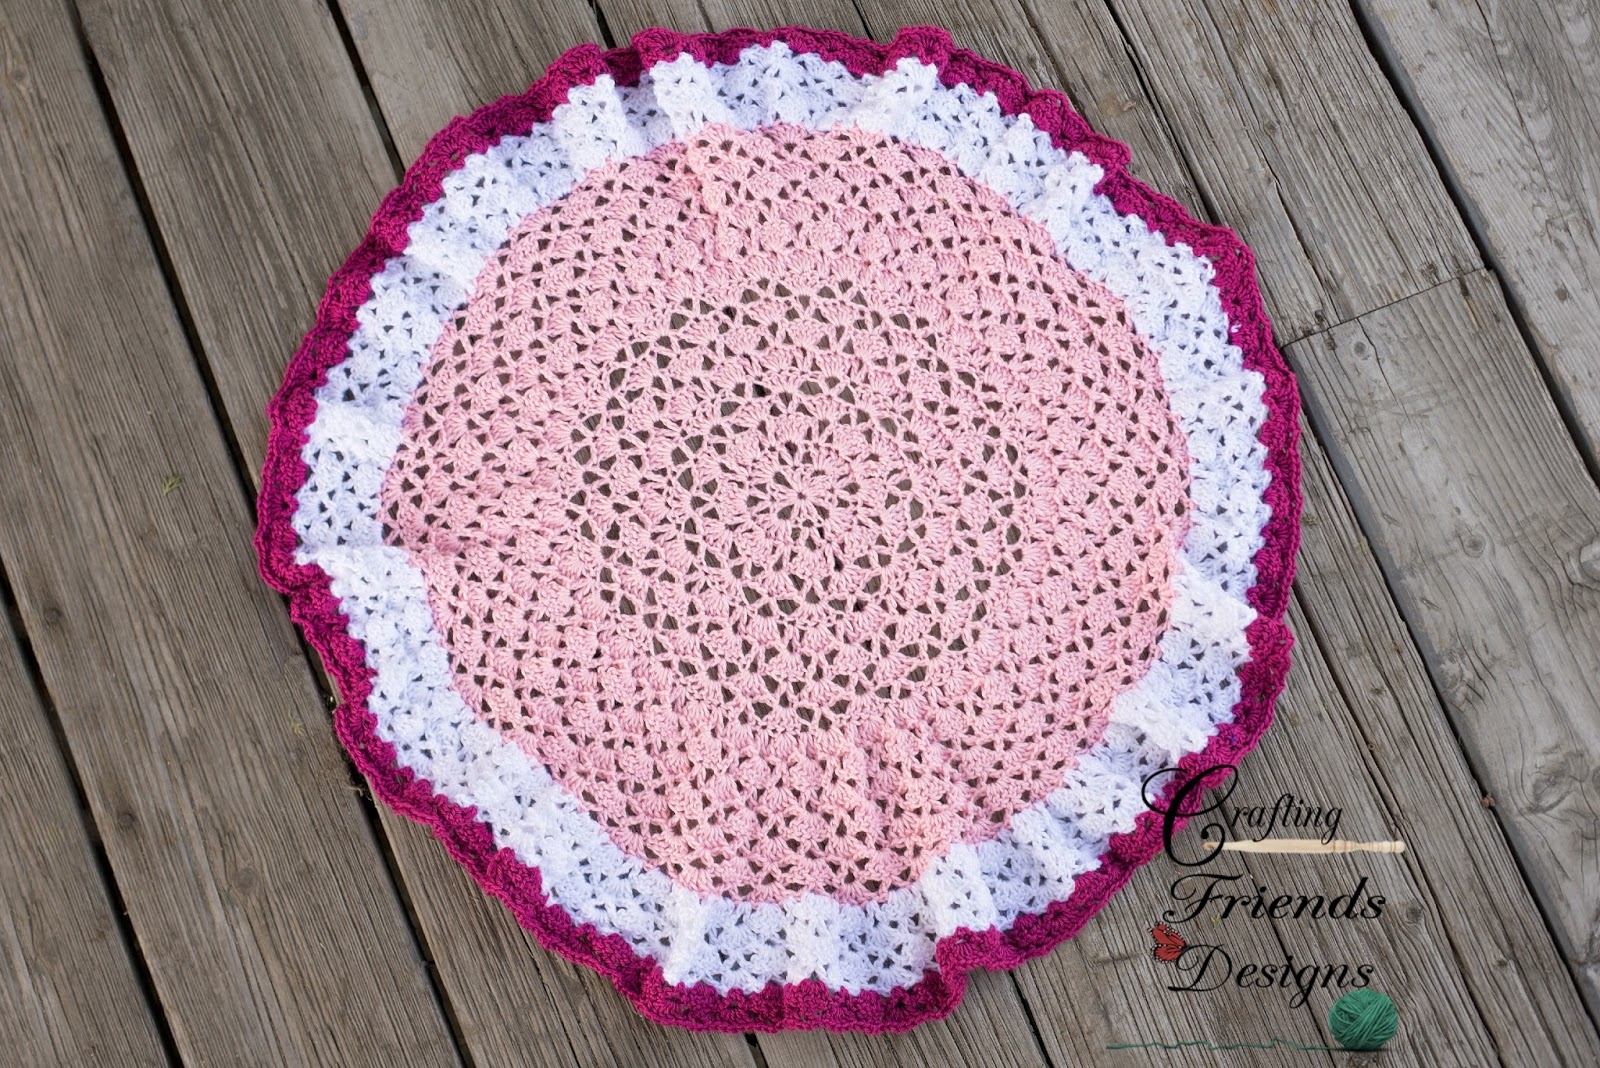 Crafting friends designs special offer for email subscribers only snap dragon crochet pattern by crafting friends designs bankloansurffo Images